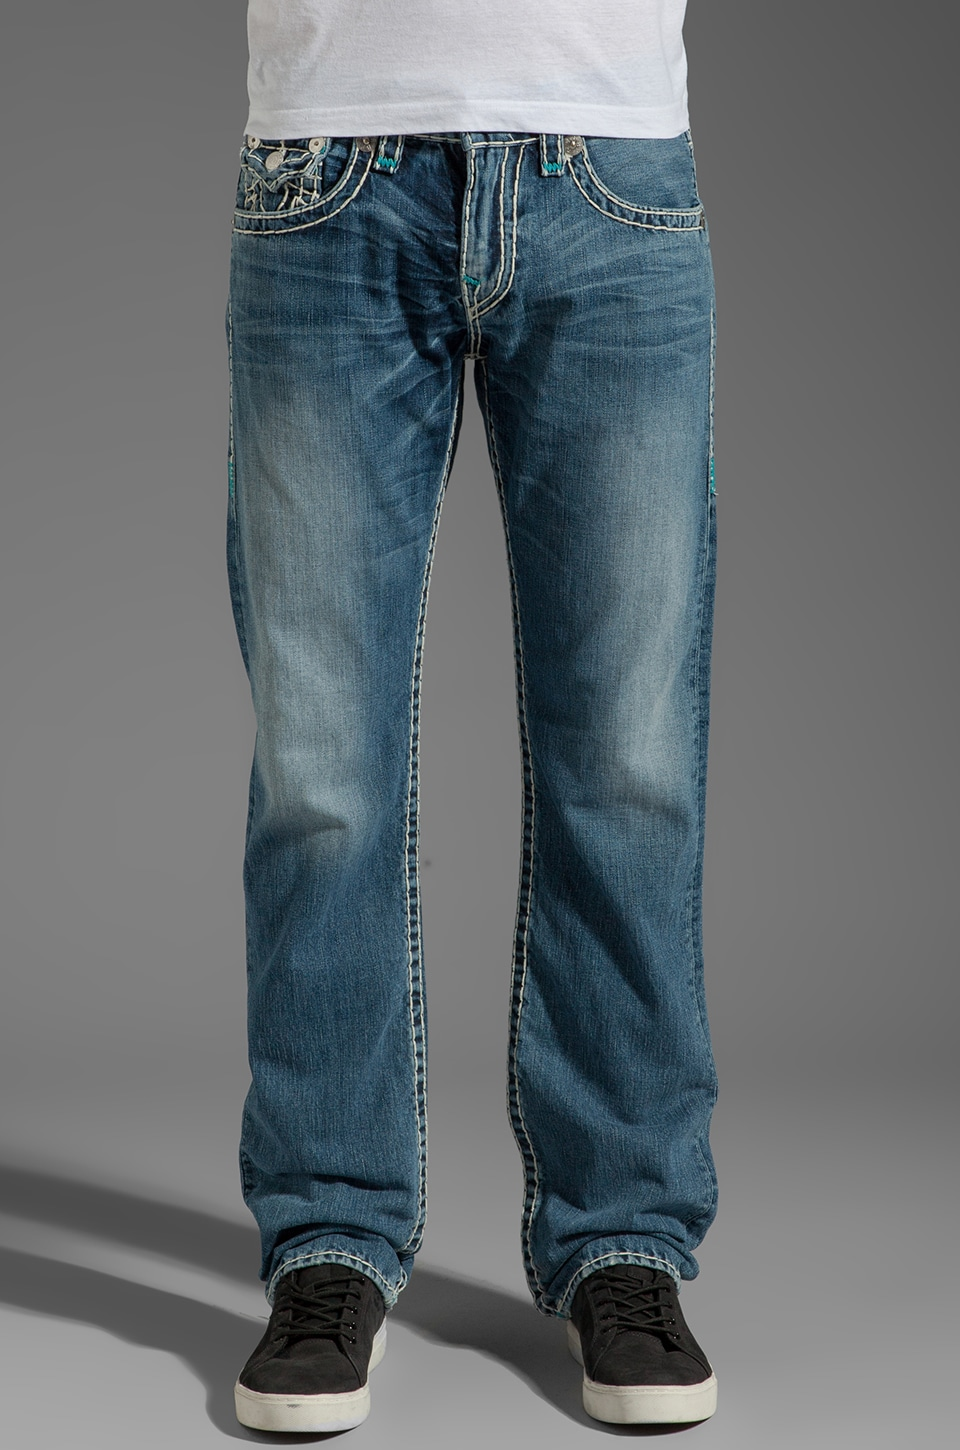 True Religion Ricky Straight Leg in Shade Horizons